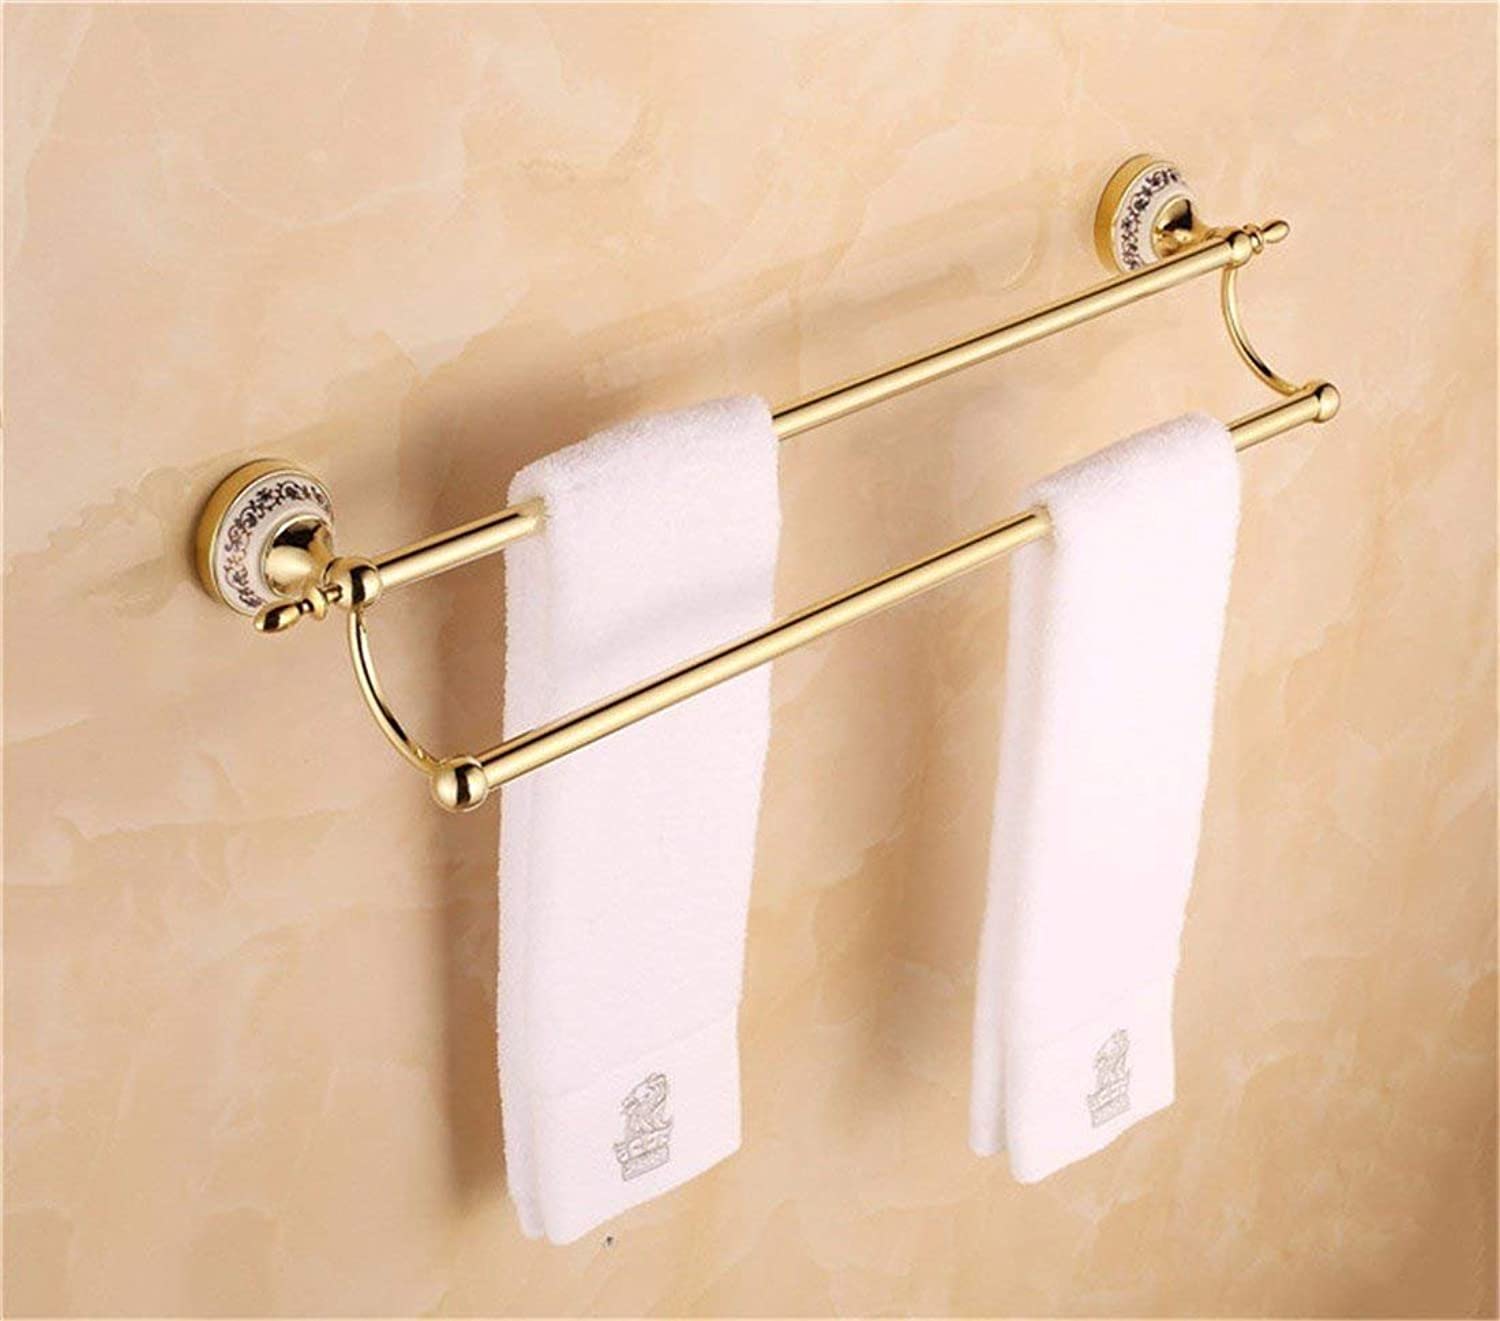 Accessories of European-Style Bathroom of Christmas in The Stainless Steel of gold Tiled Bathroom All Pendant, Door-Soap, Brush,Double Rack